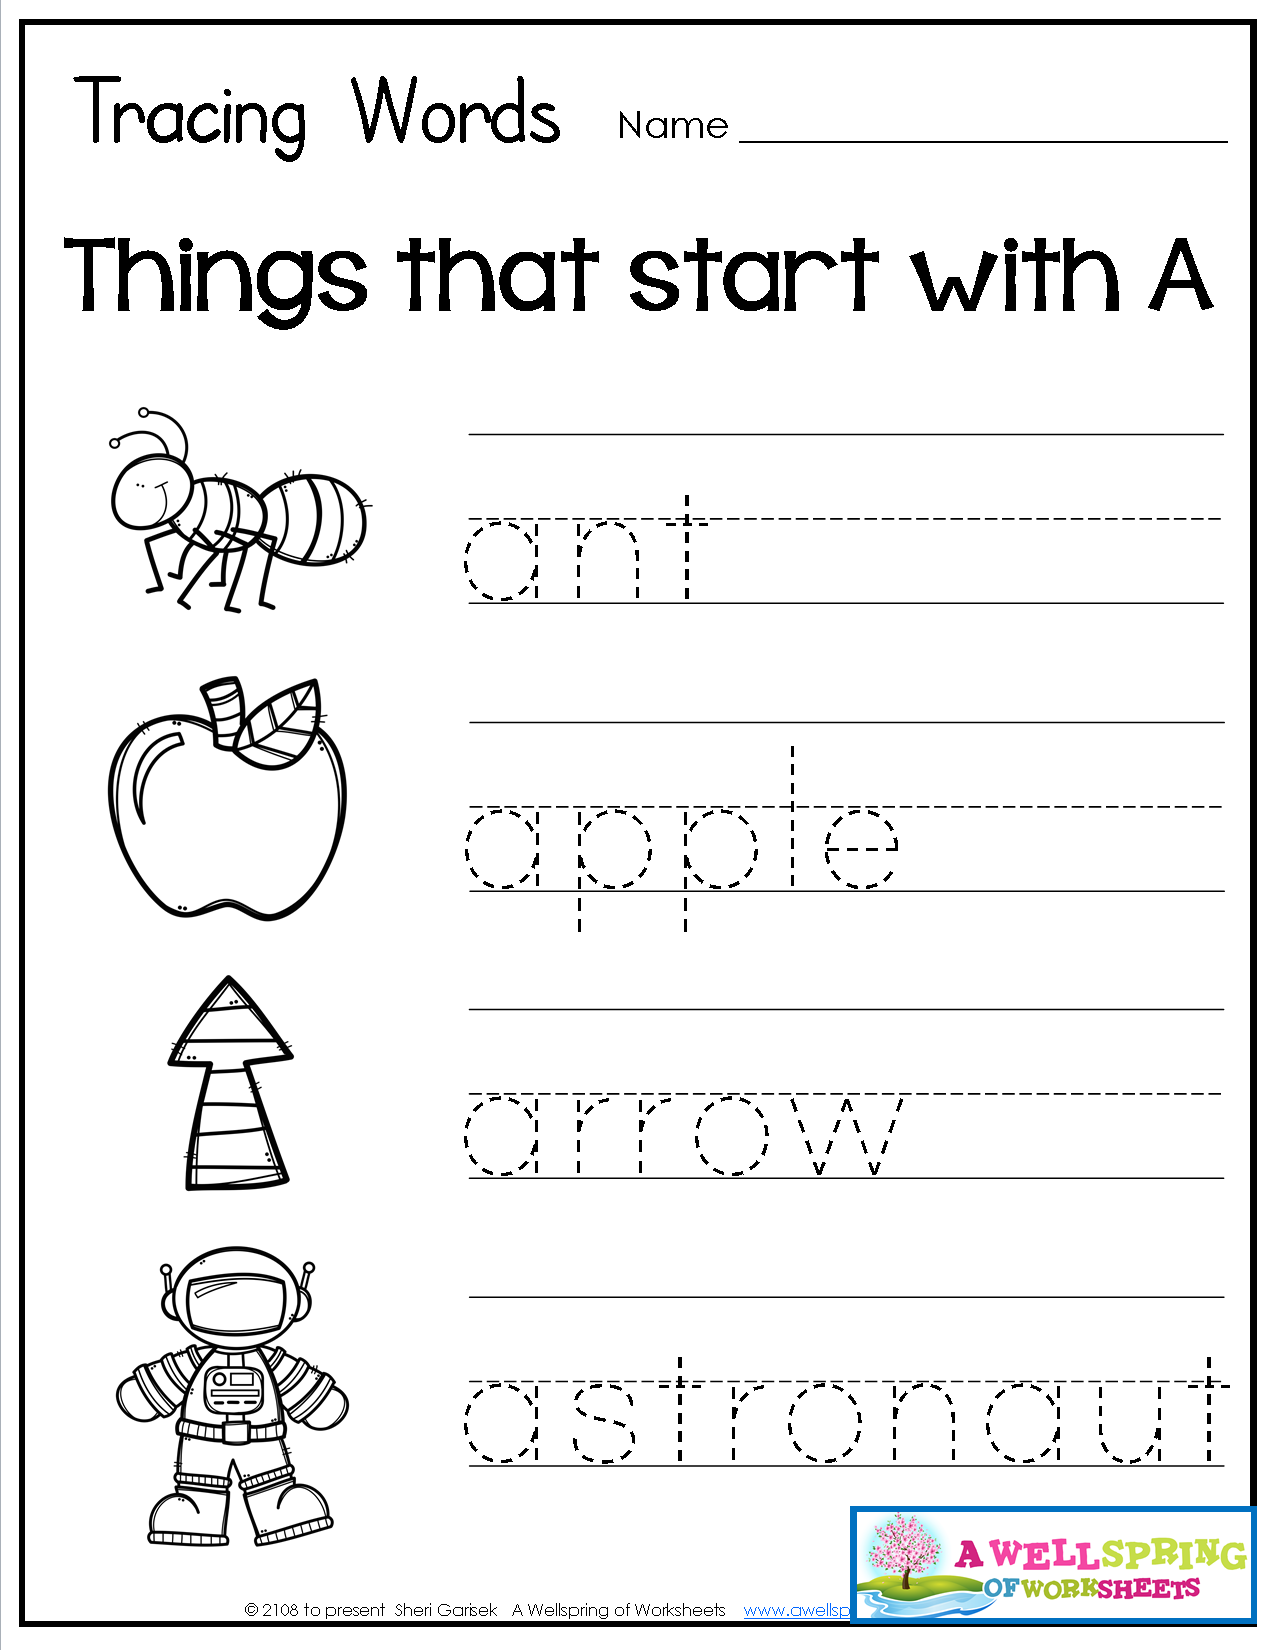 Tracing Words Things that Start with AZ Alphabet